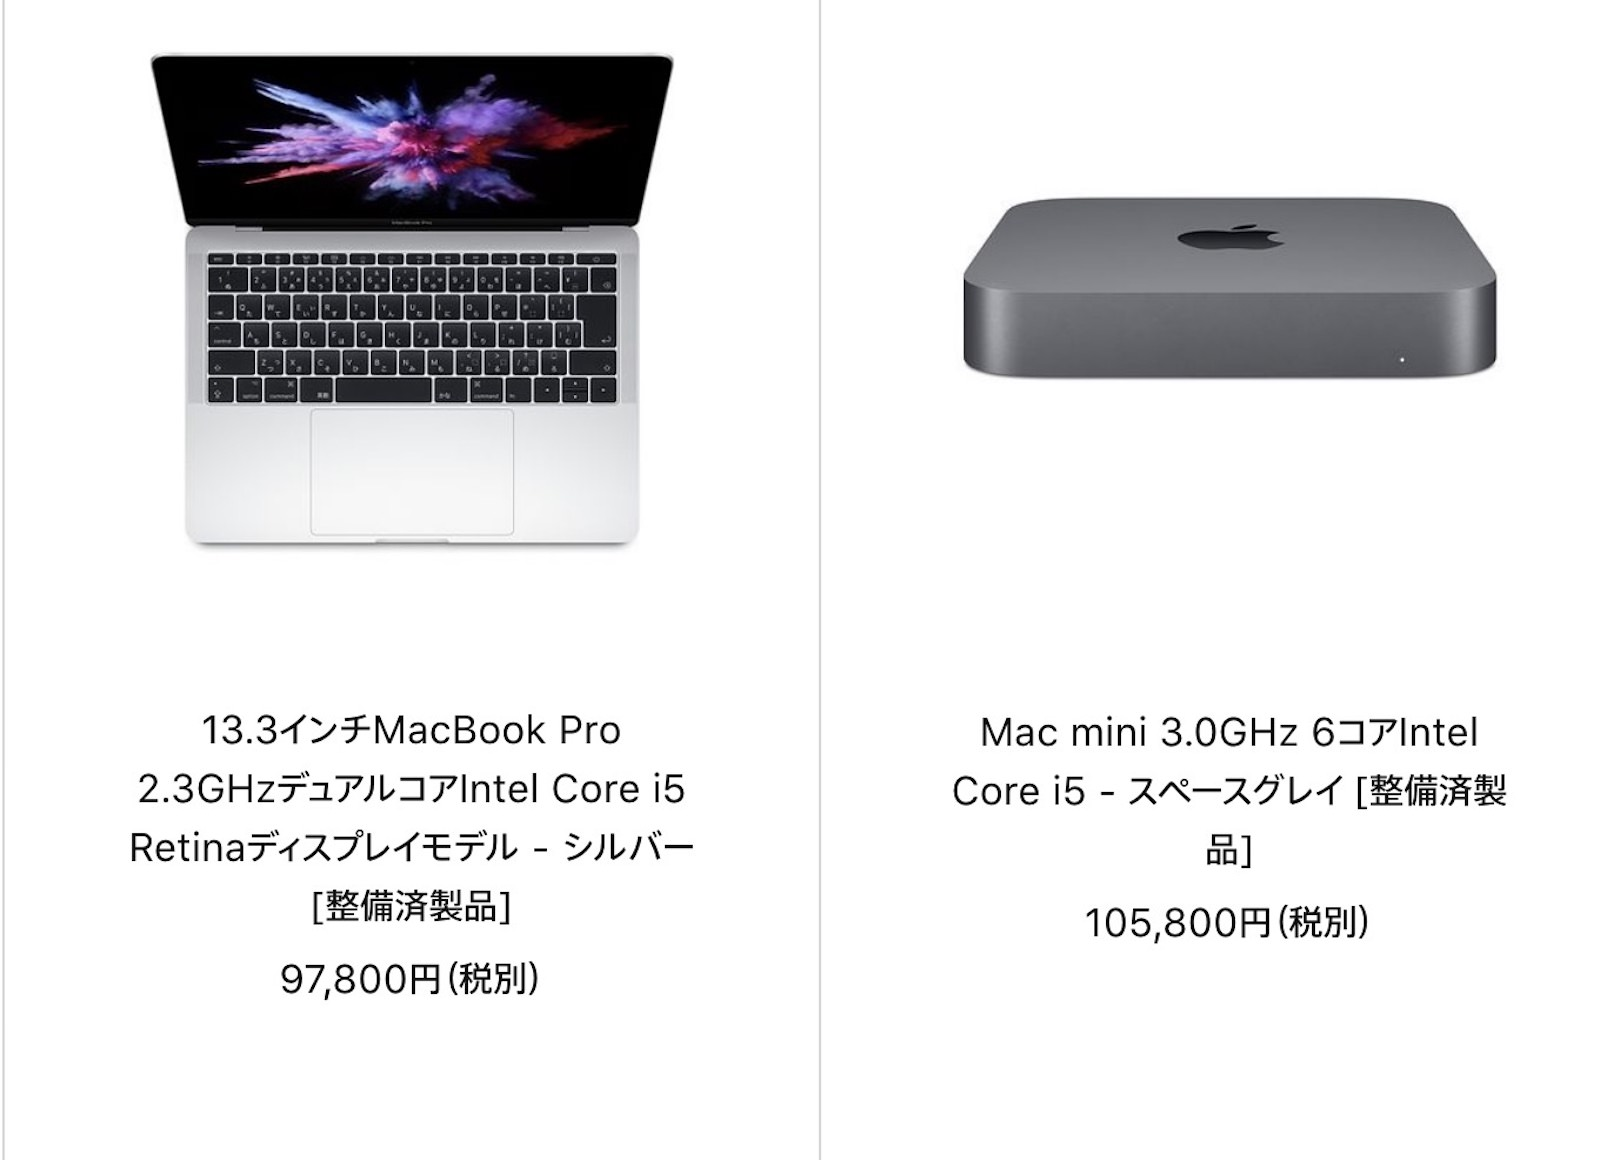 Macbookpro and mac mini refurbished